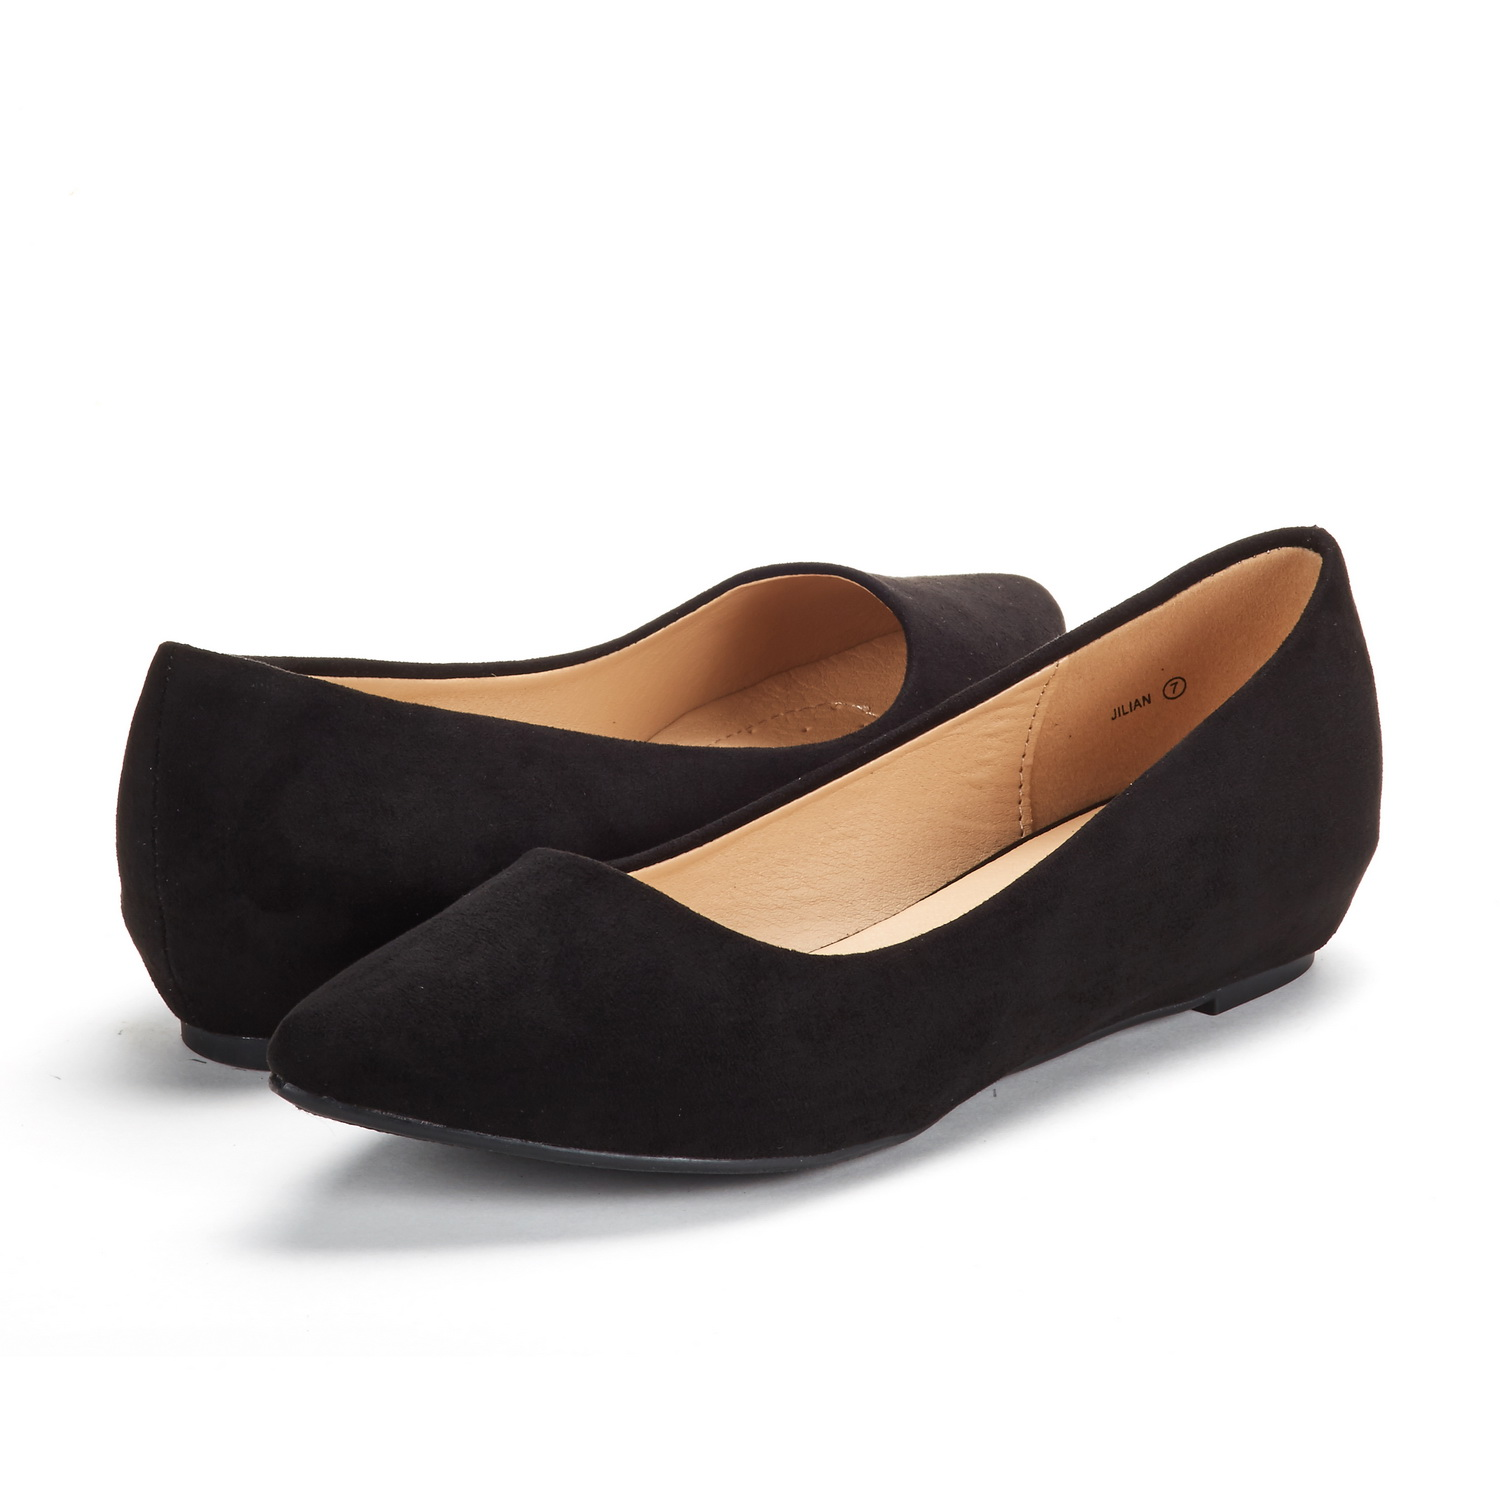 DREAM-PAIRS-Women-Low-Wedge-Flats-Ladies-Pointed-Toe-Slip-On-Comfort-Flat-Shoes thumbnail 59